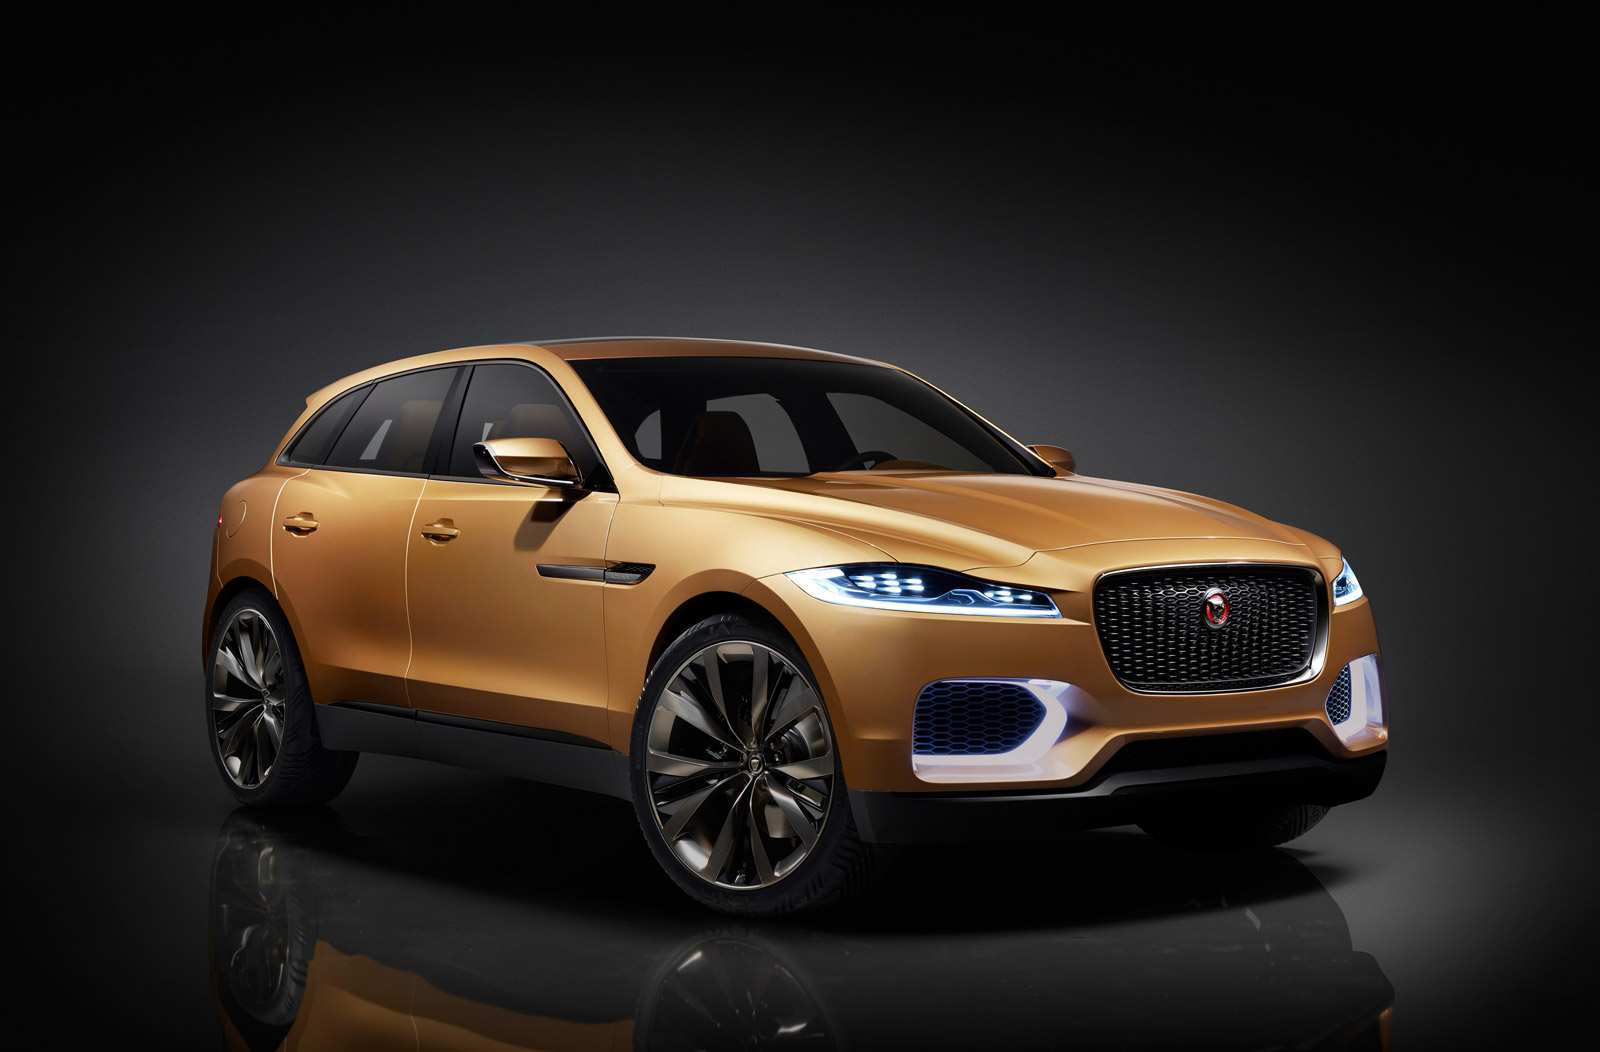 38 New 2019 Jaguar C X17 Crossover Engine